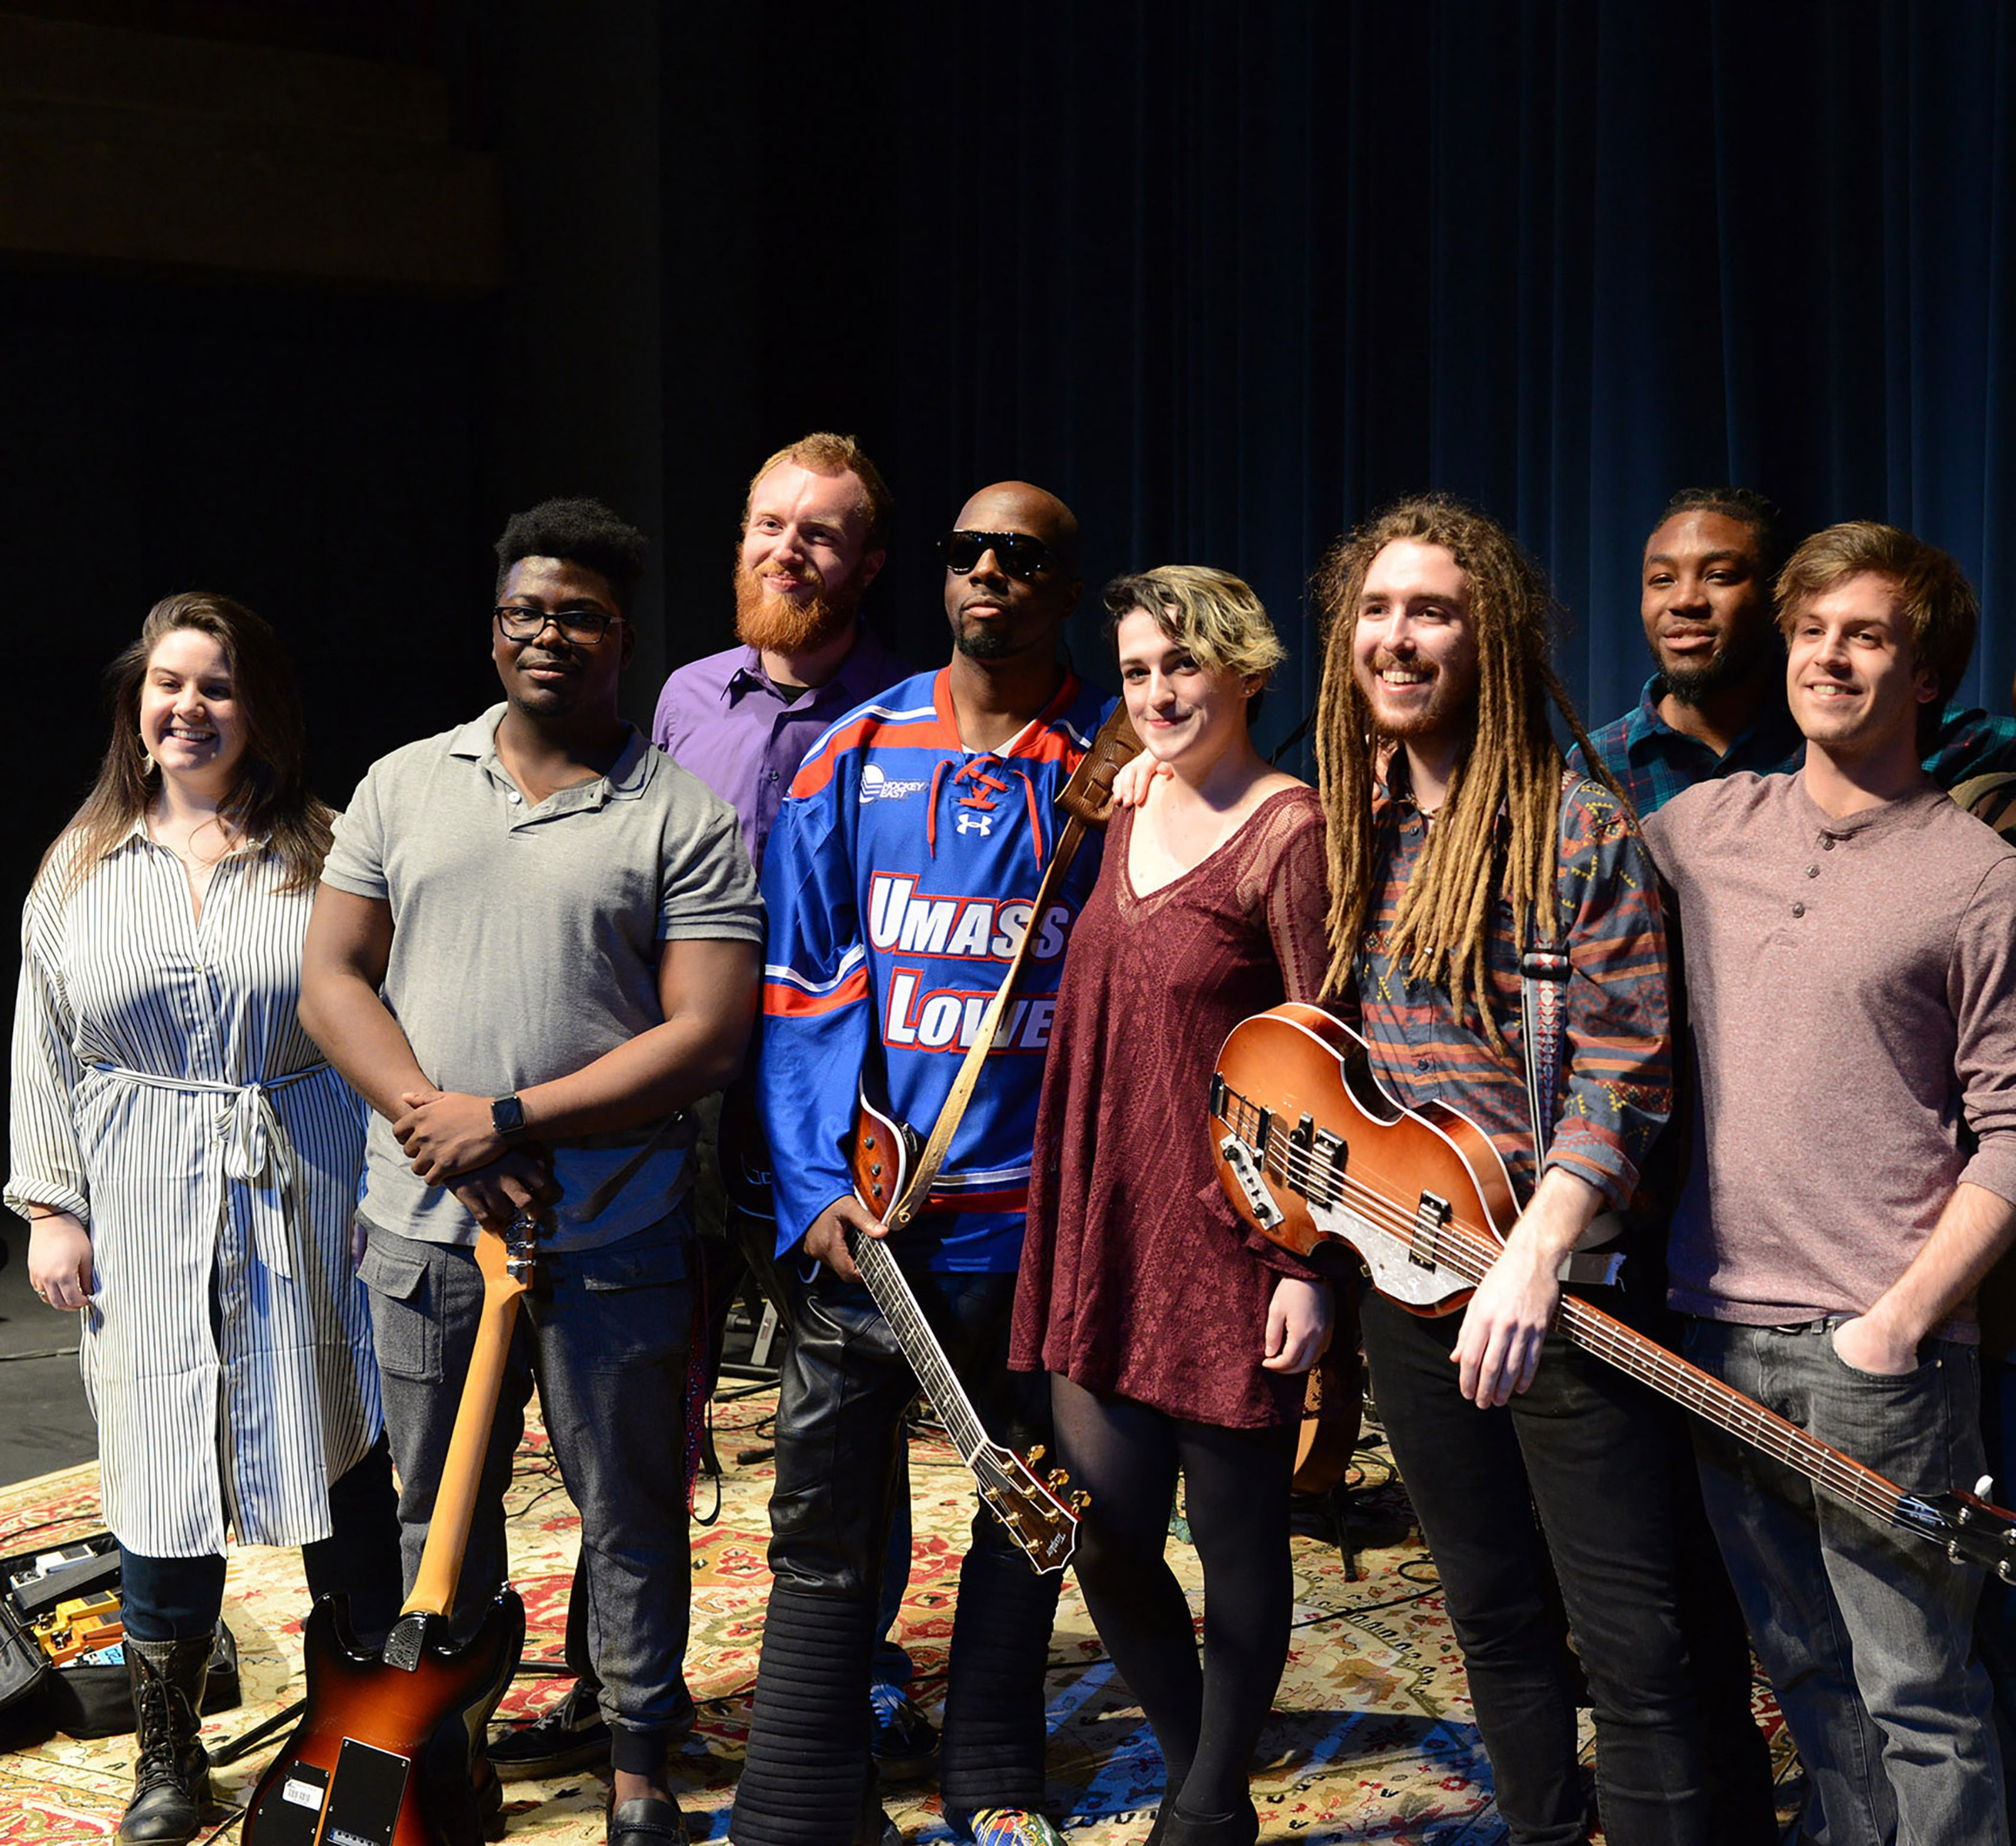 Former Fugees Frontman Wyclef Jean At Umass Lowell The Boston Globe Wyclef Jean Wyclef Fugees